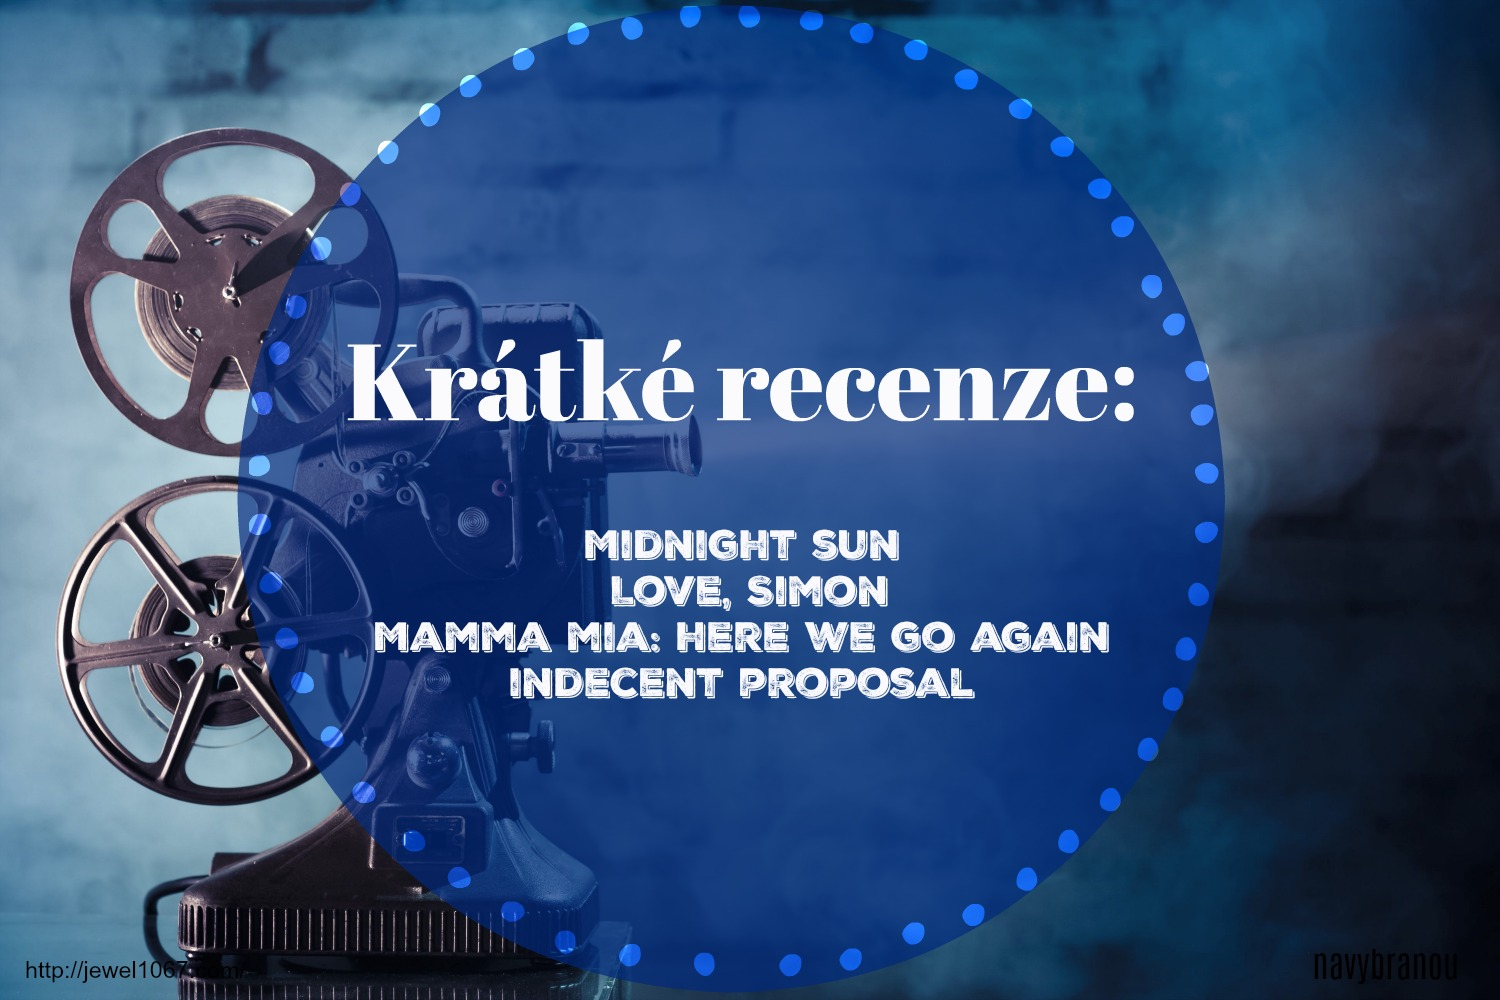 Krátké recenze: Midnight Sun, Love Simon, Mamma mia: here we go again a Indecent Proposal